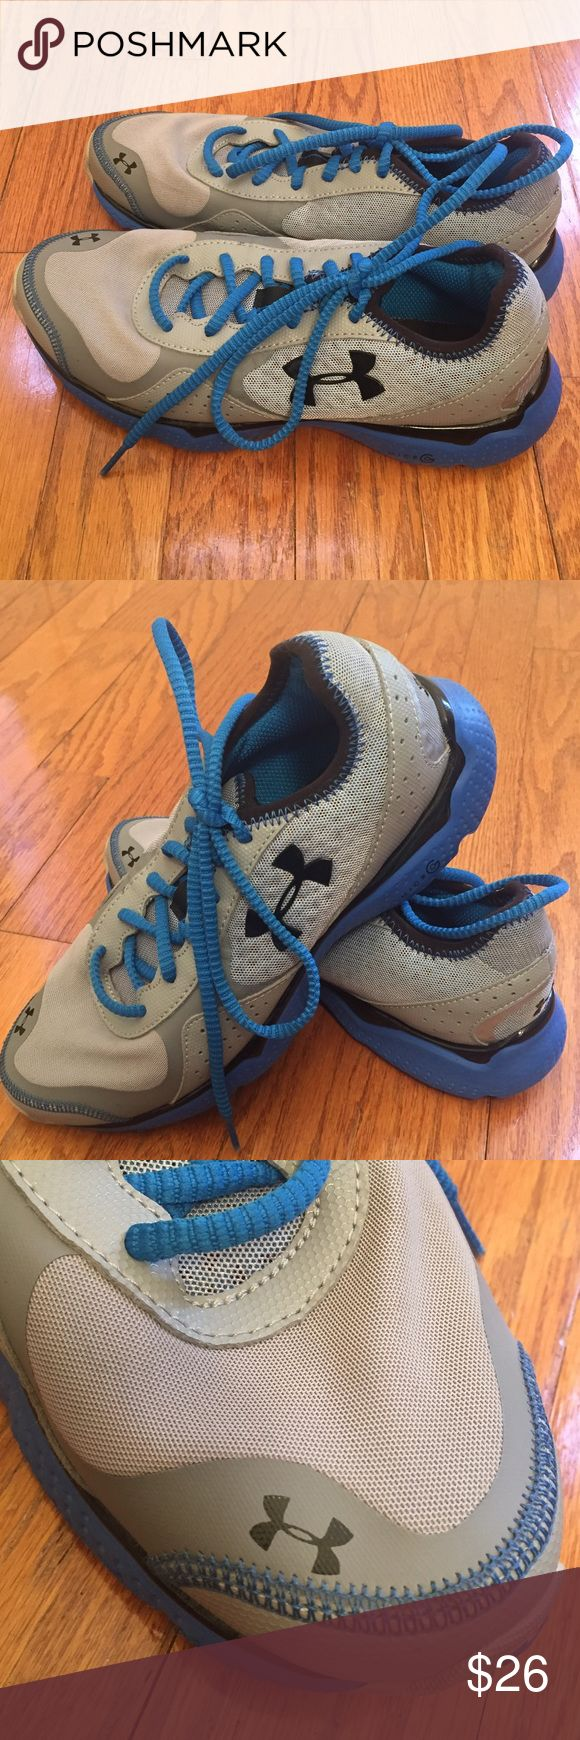 Under Armour Micro G sneakers Youth Boys Under Armour Micro G running sneakers.  Boys size 5.5.  Lightweight, breathable, and supportive.  Like new condition, Worn once.  Stay-tied laces. Under Armour Shoes Sneakers